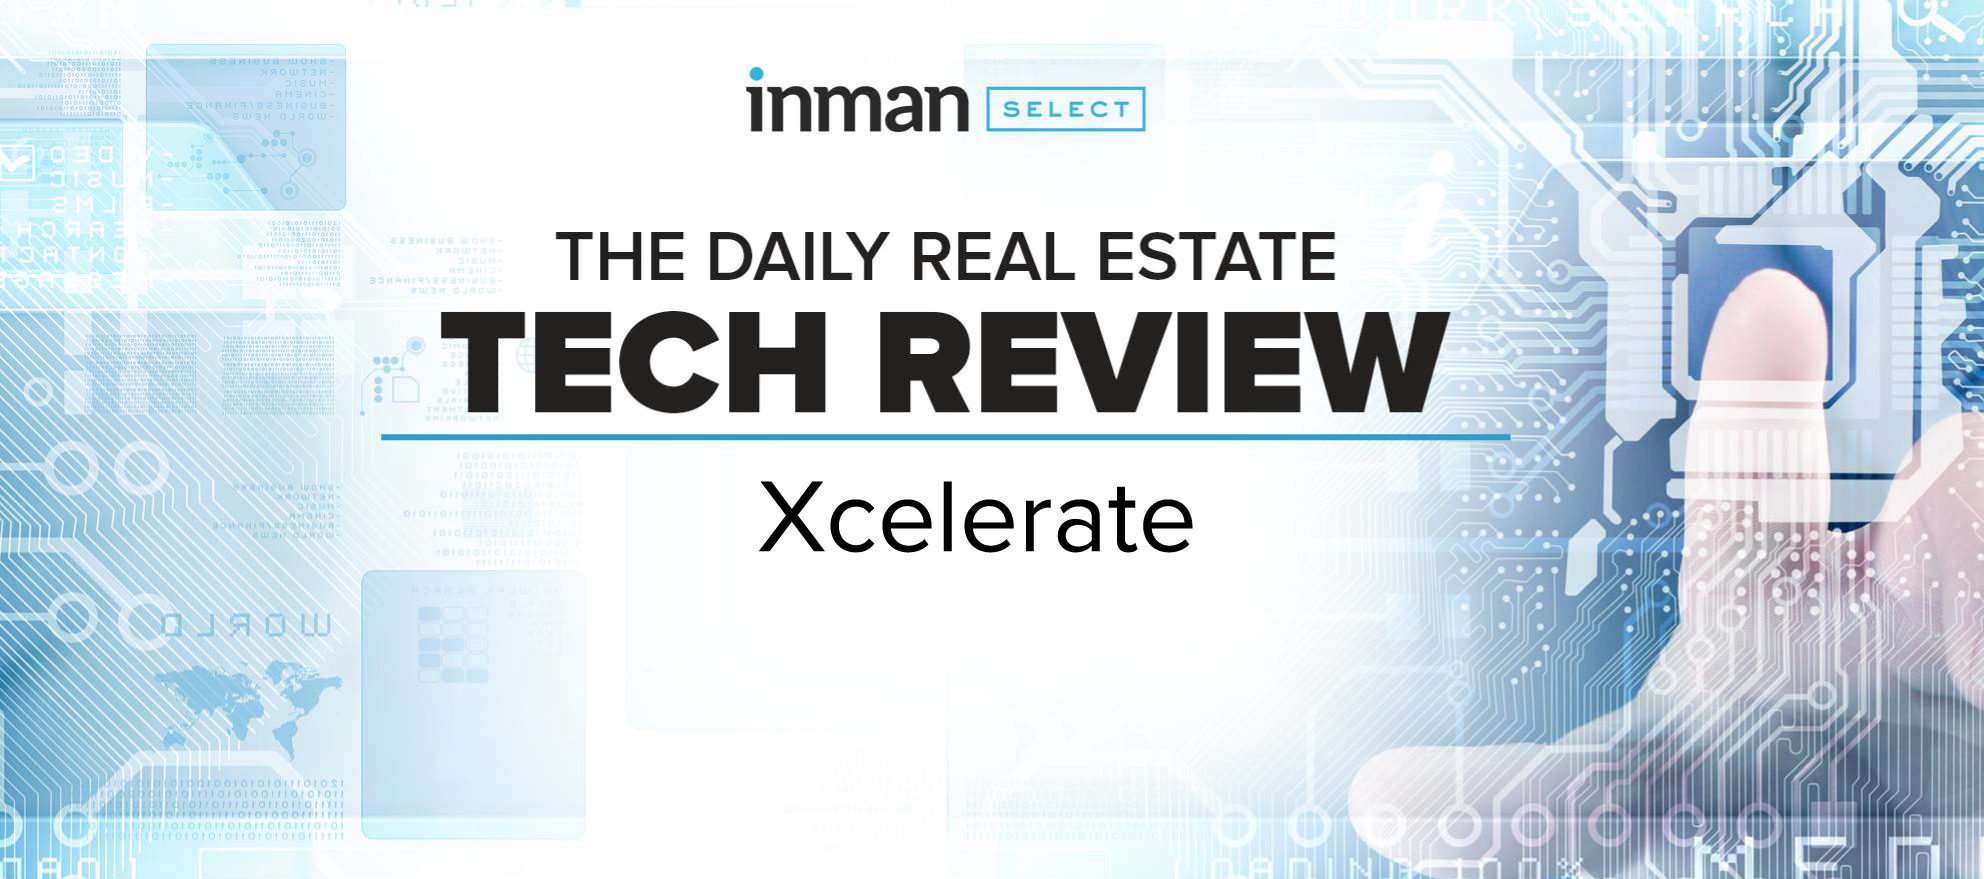 Xcelerate is a CRM that could use a slight boost